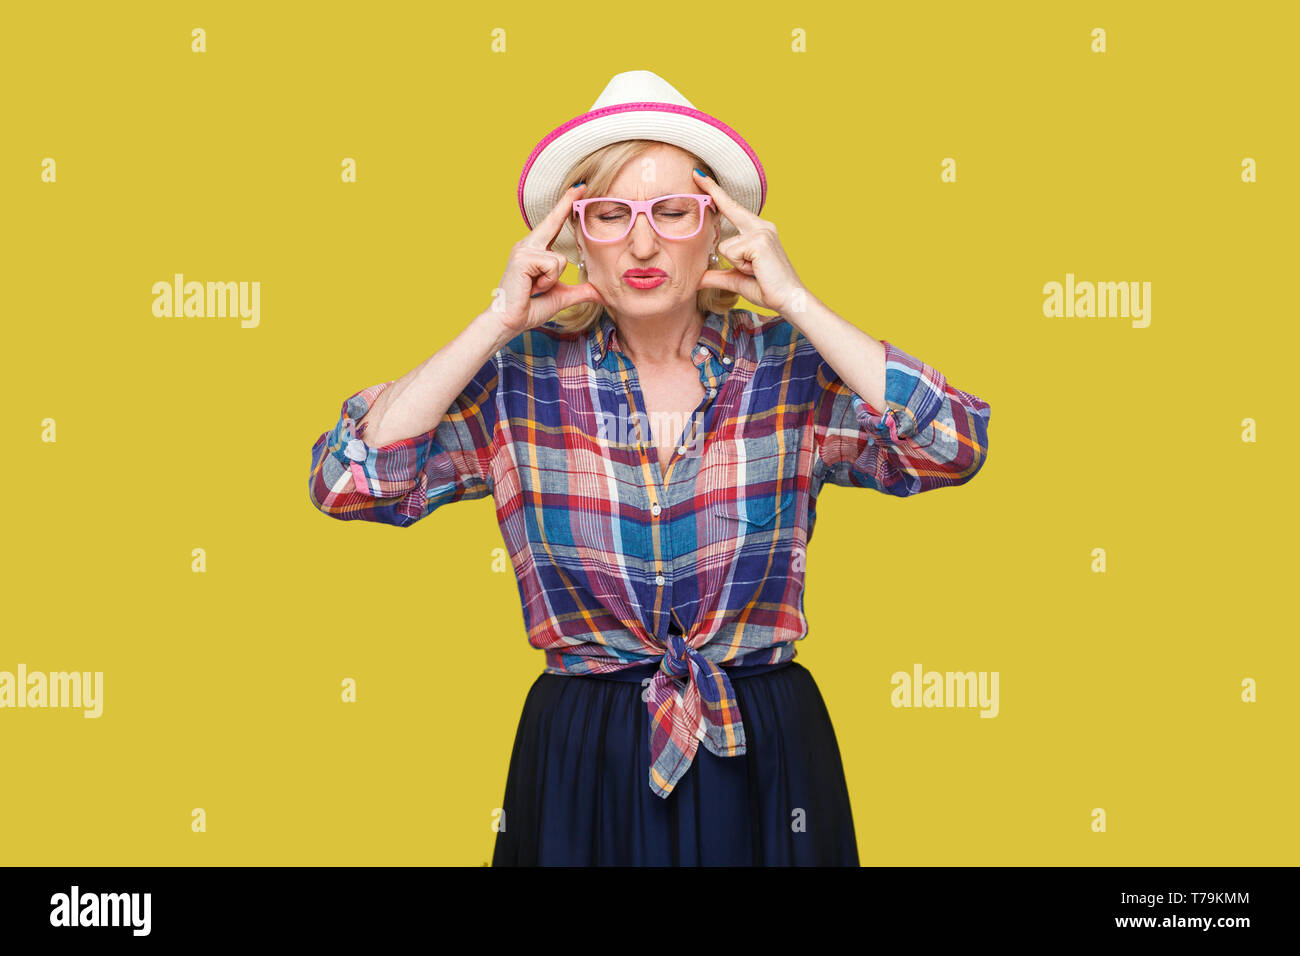 Headache or confusion. Portrait of frowning stylish mature woman in casual style with hat and eyeglasses standing holding her head with head pain. ind - Stock Image